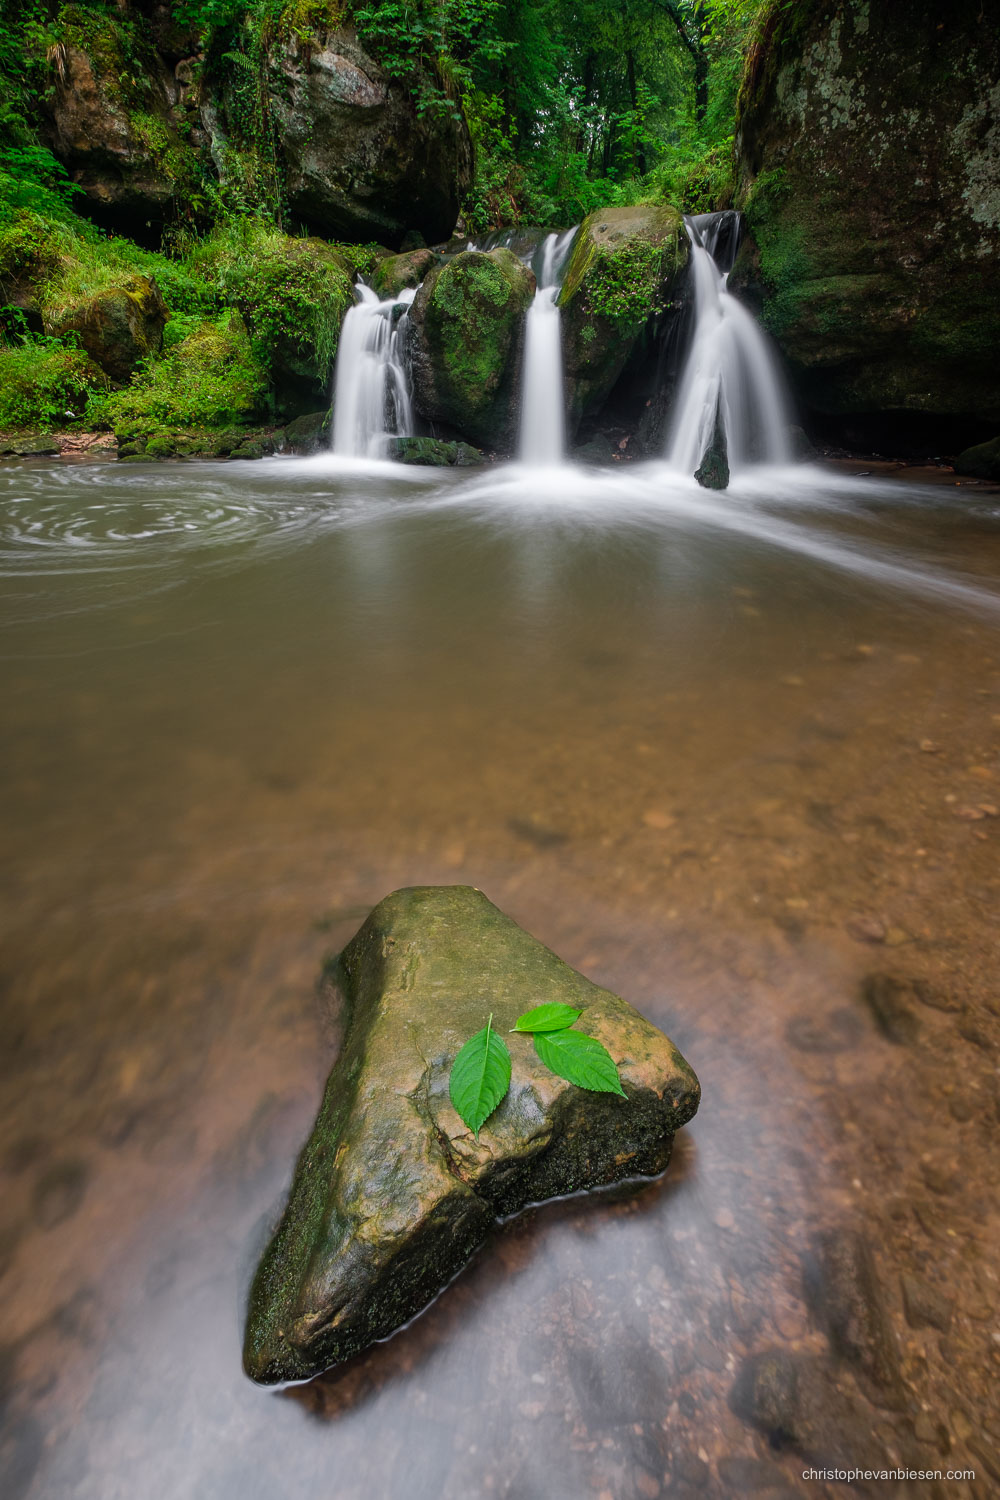 Photography Workshop Mullerthal - Luxembourg - Luxembourg's Schiessentumpel waterfall in the Mullerthal region on a rainy summer day - The Lonely Rock